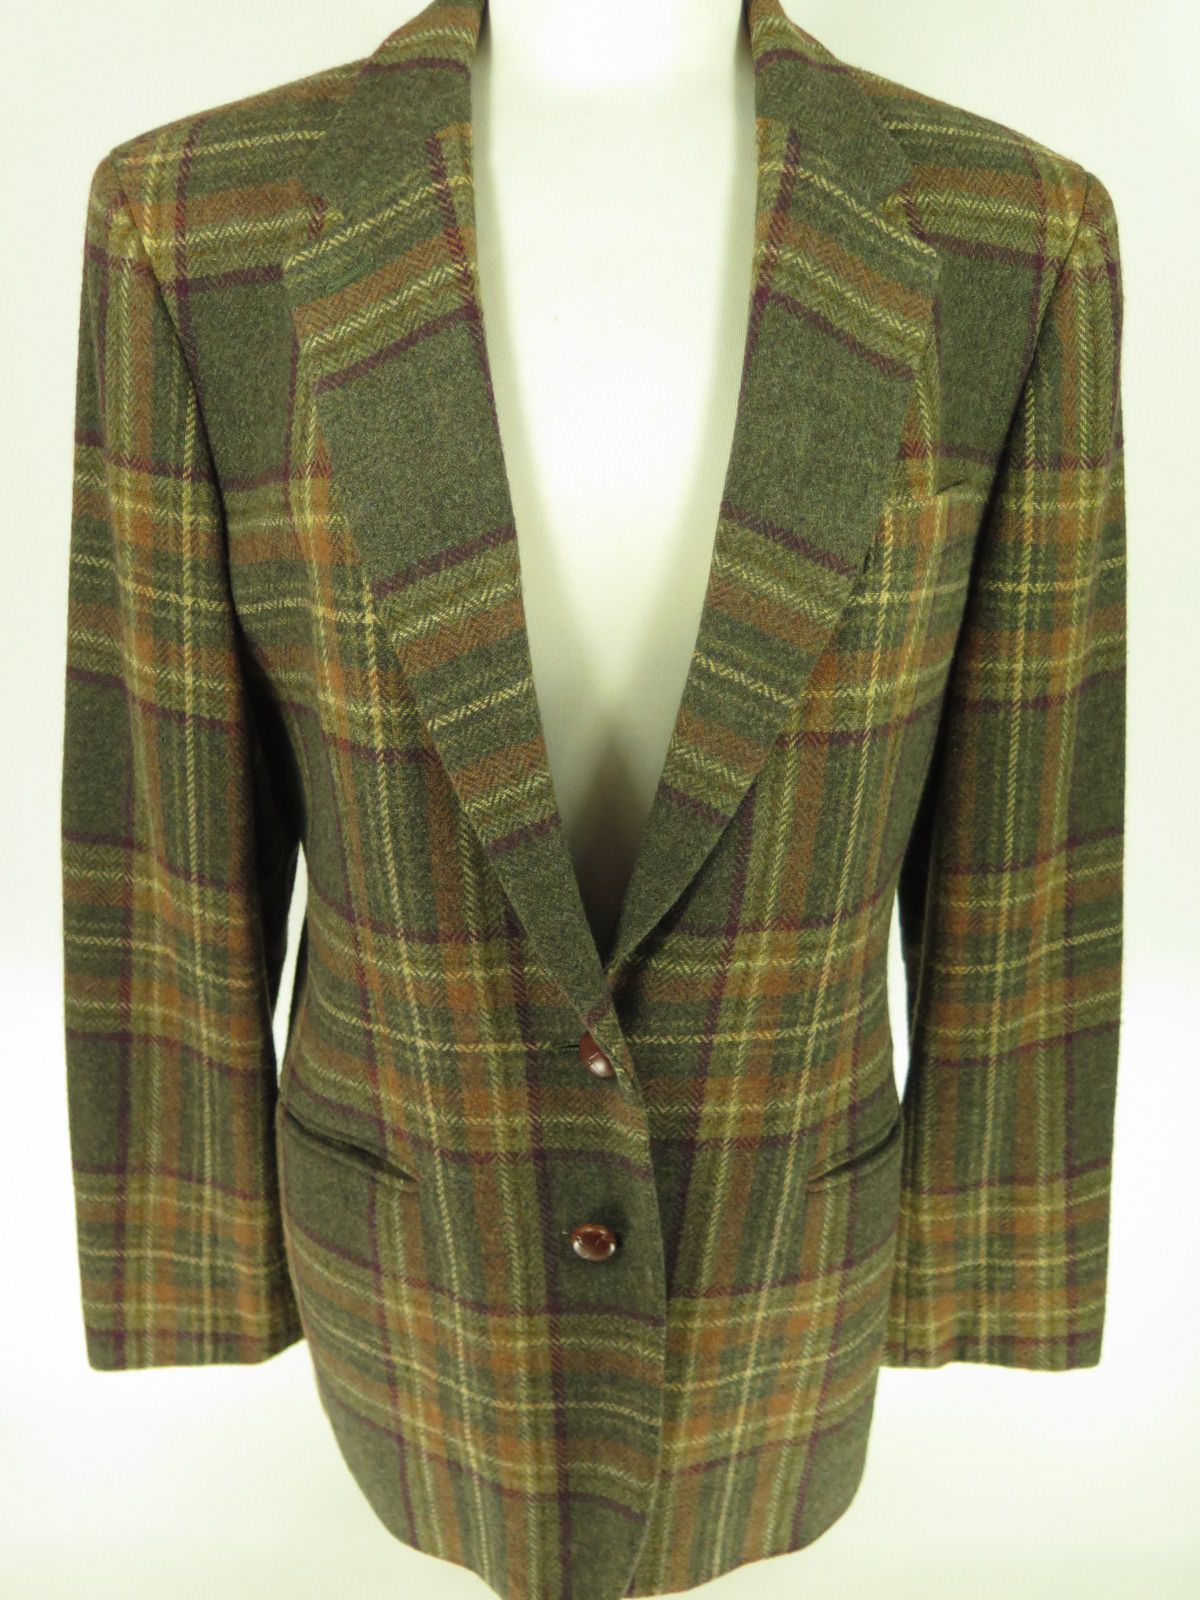 cb8c5bc9f44abf Vintage Ralph Lauren Plaid women's 2 leather knot button blazer with  leather elbow pads. Find more men's and women's authentic vintage clothing  at ...